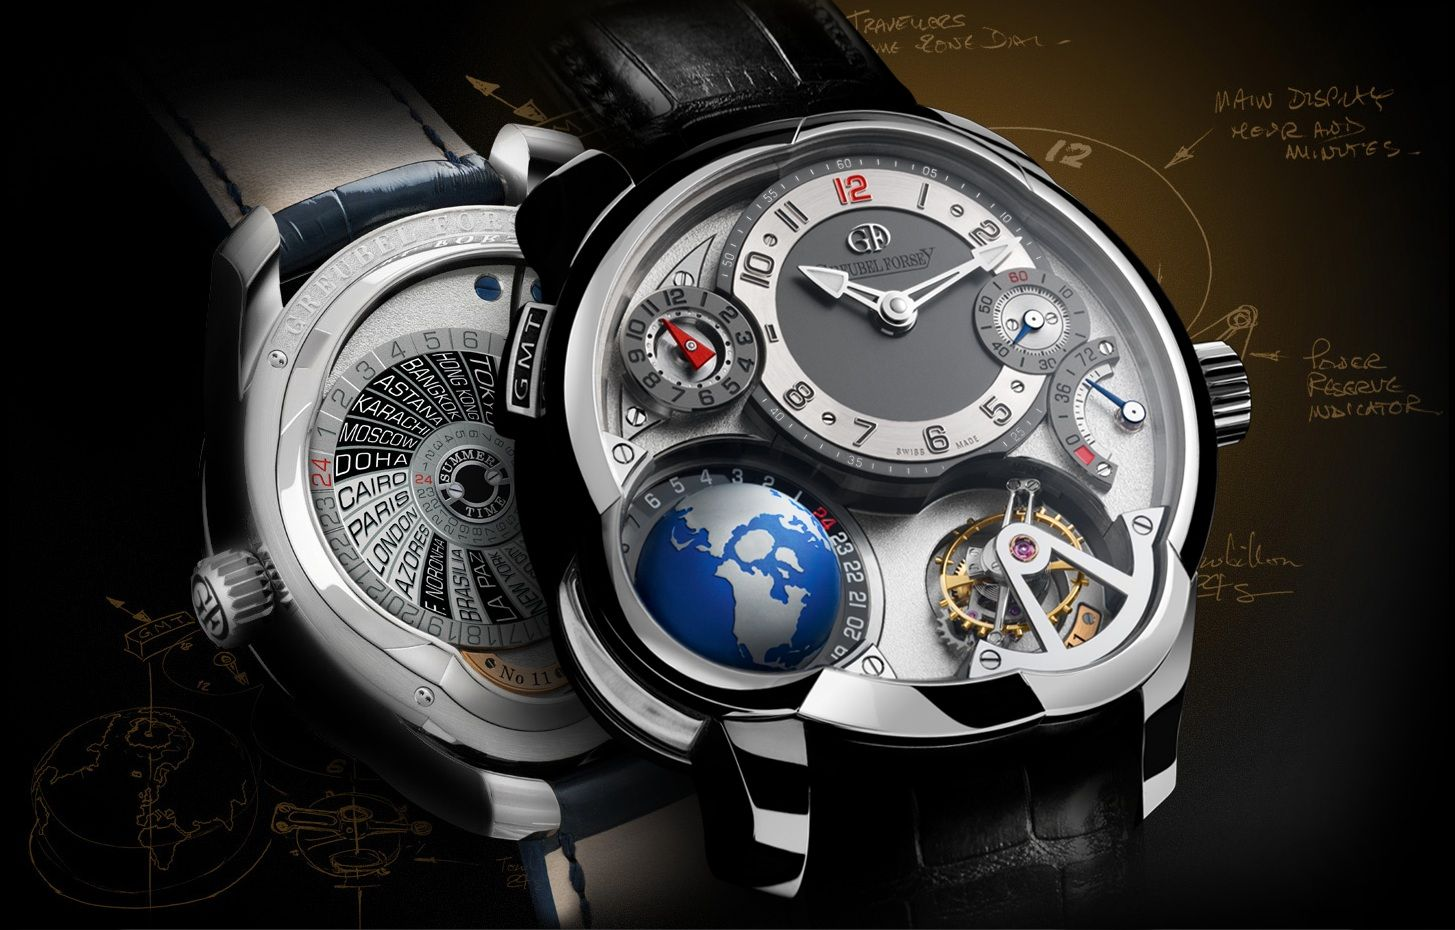 Most Expensive Watch Brands Top 5 Ealuxe Com Time Machines